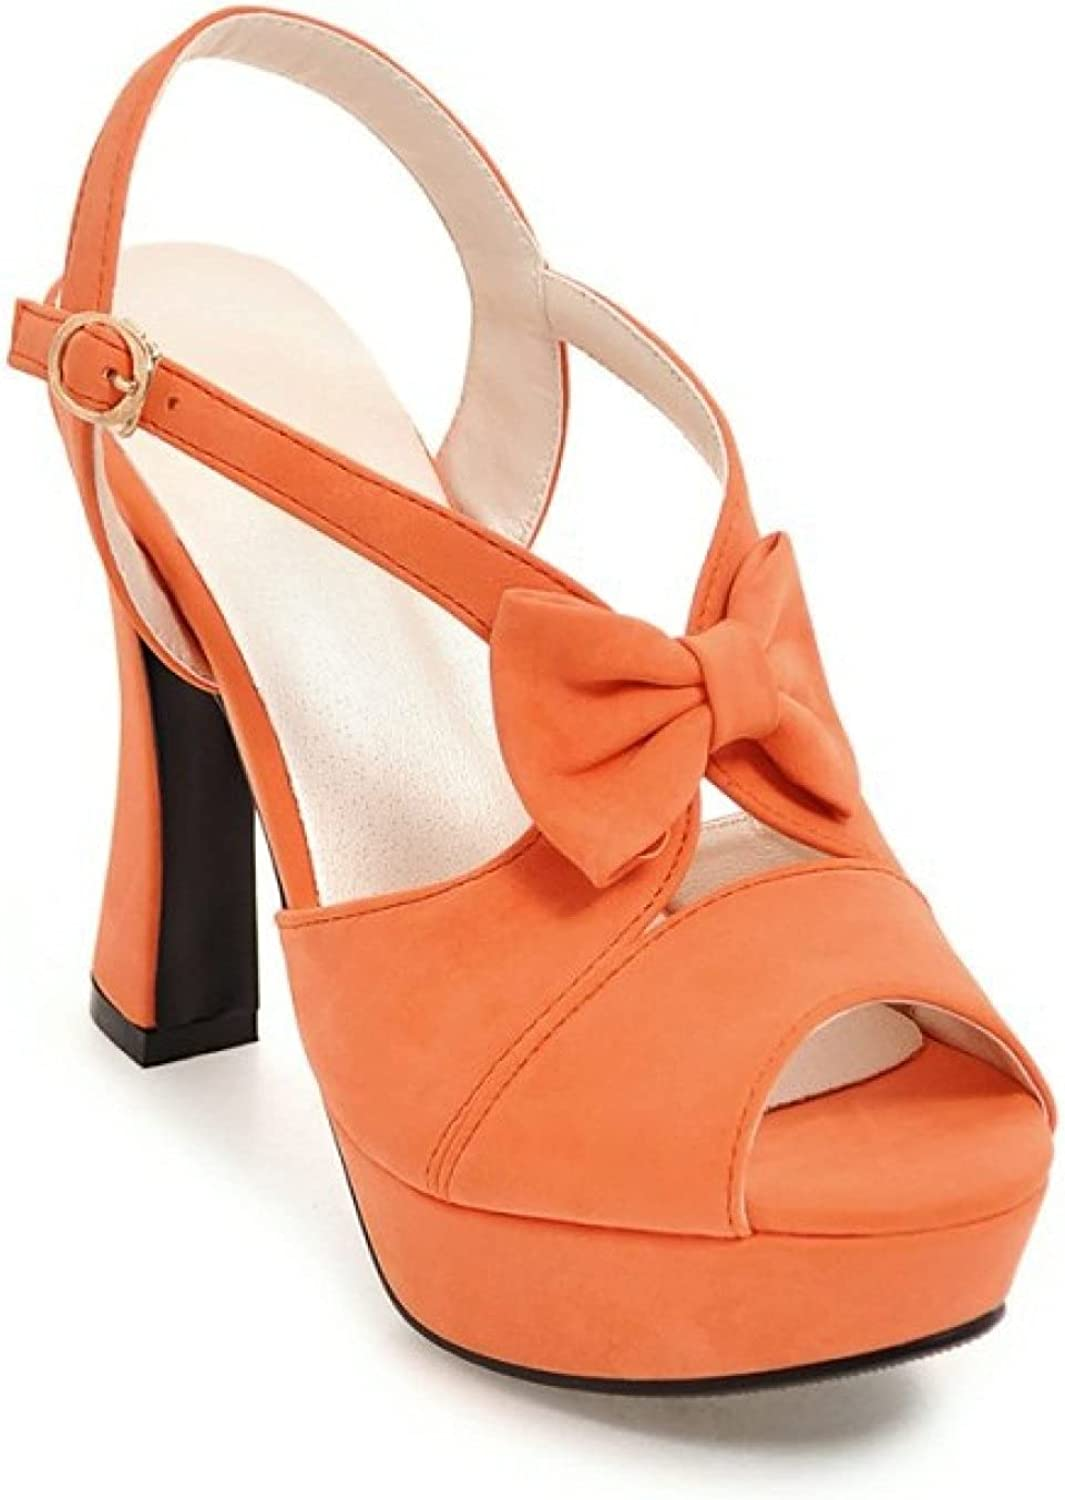 Women's Bowknot Ankle Strap Platform Sandals Fashion Cut Out Chunky High Heel Peep Toe Pumps Solid Colors Heeled Sandal